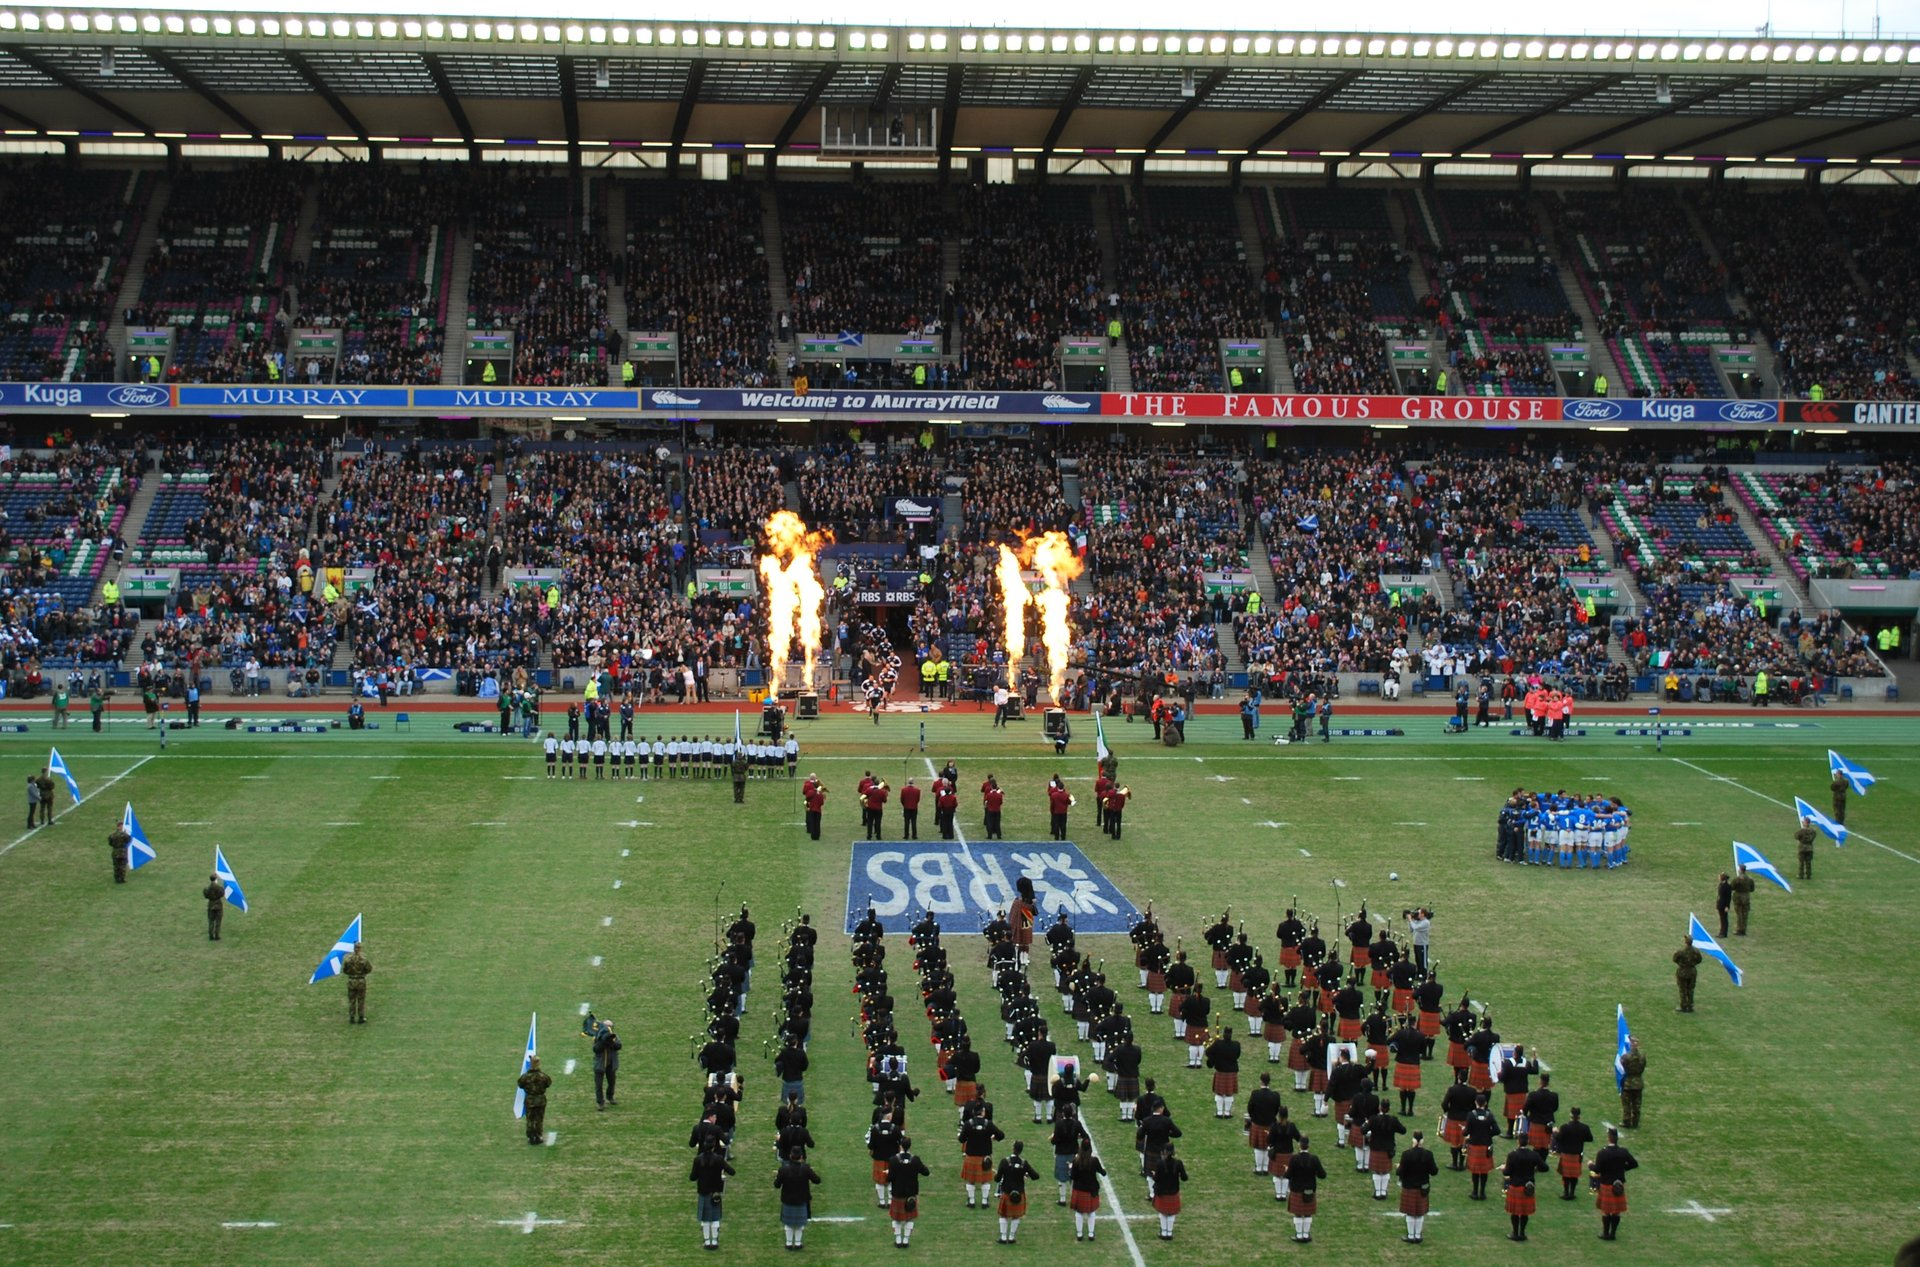 Rugby in Edinburgh: Six Nations Cup in Edinburgh - Best Season 2020